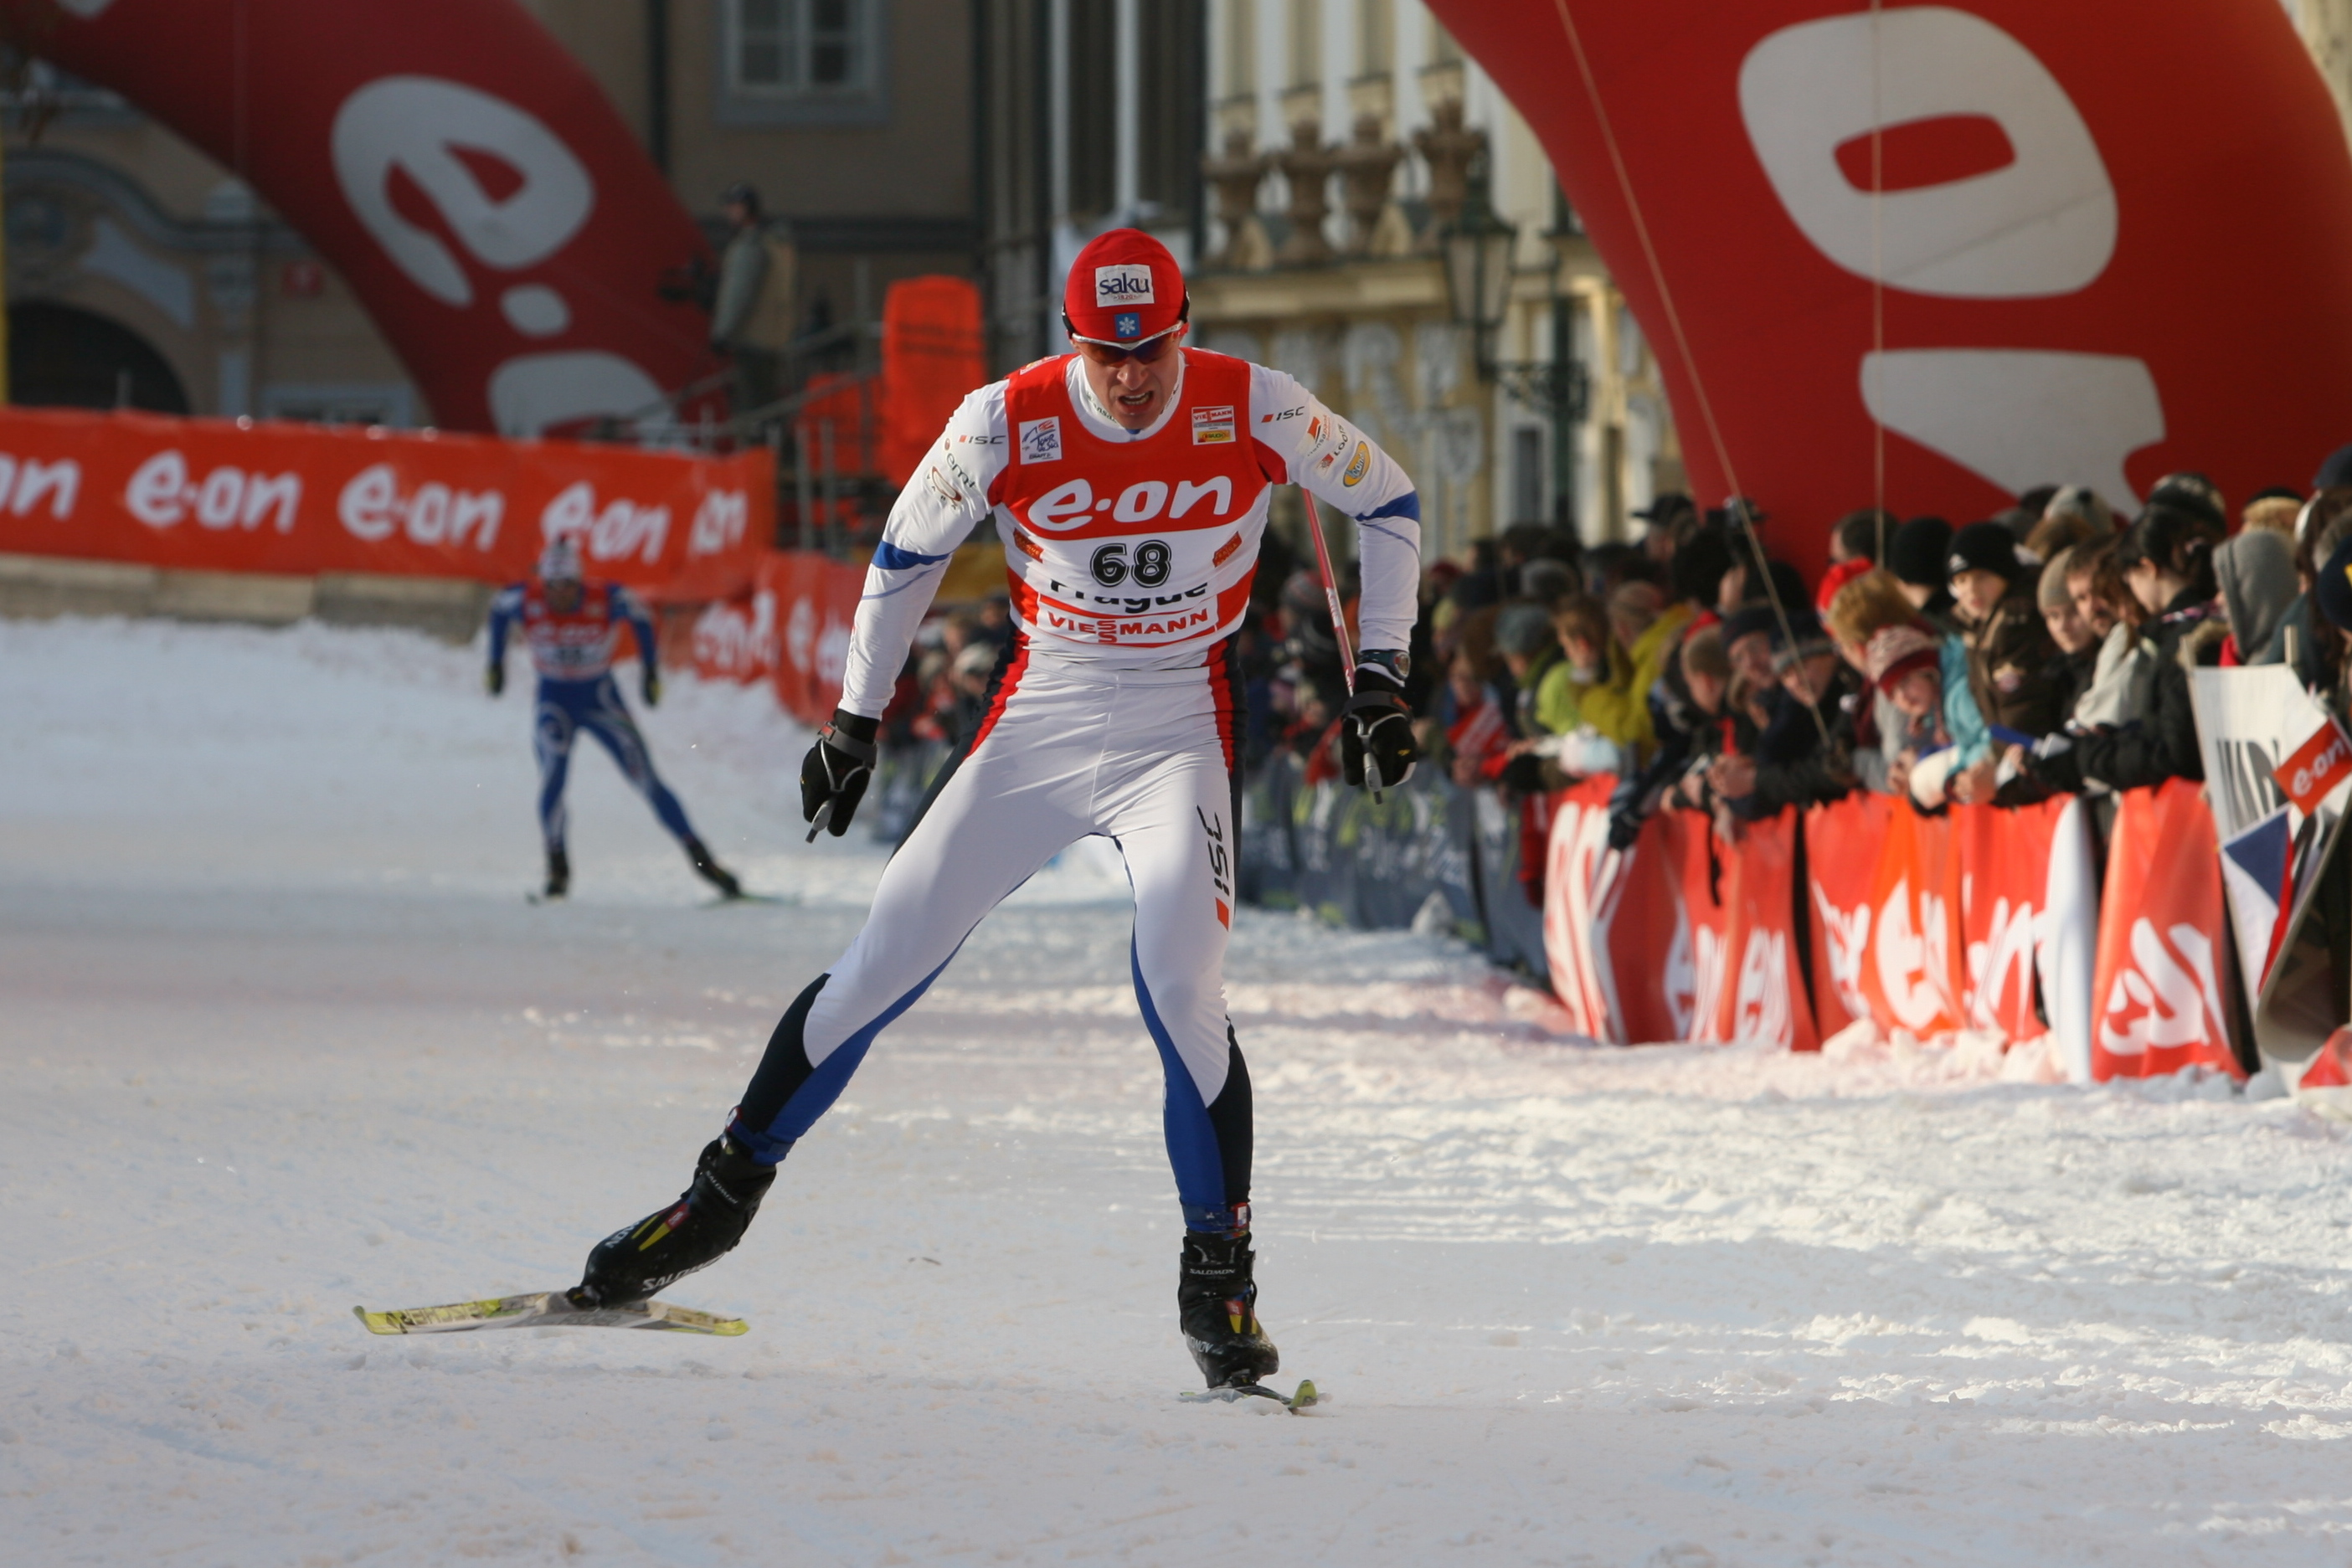 Priit Narusk in the qualification for the Tour de Ski in Prague.